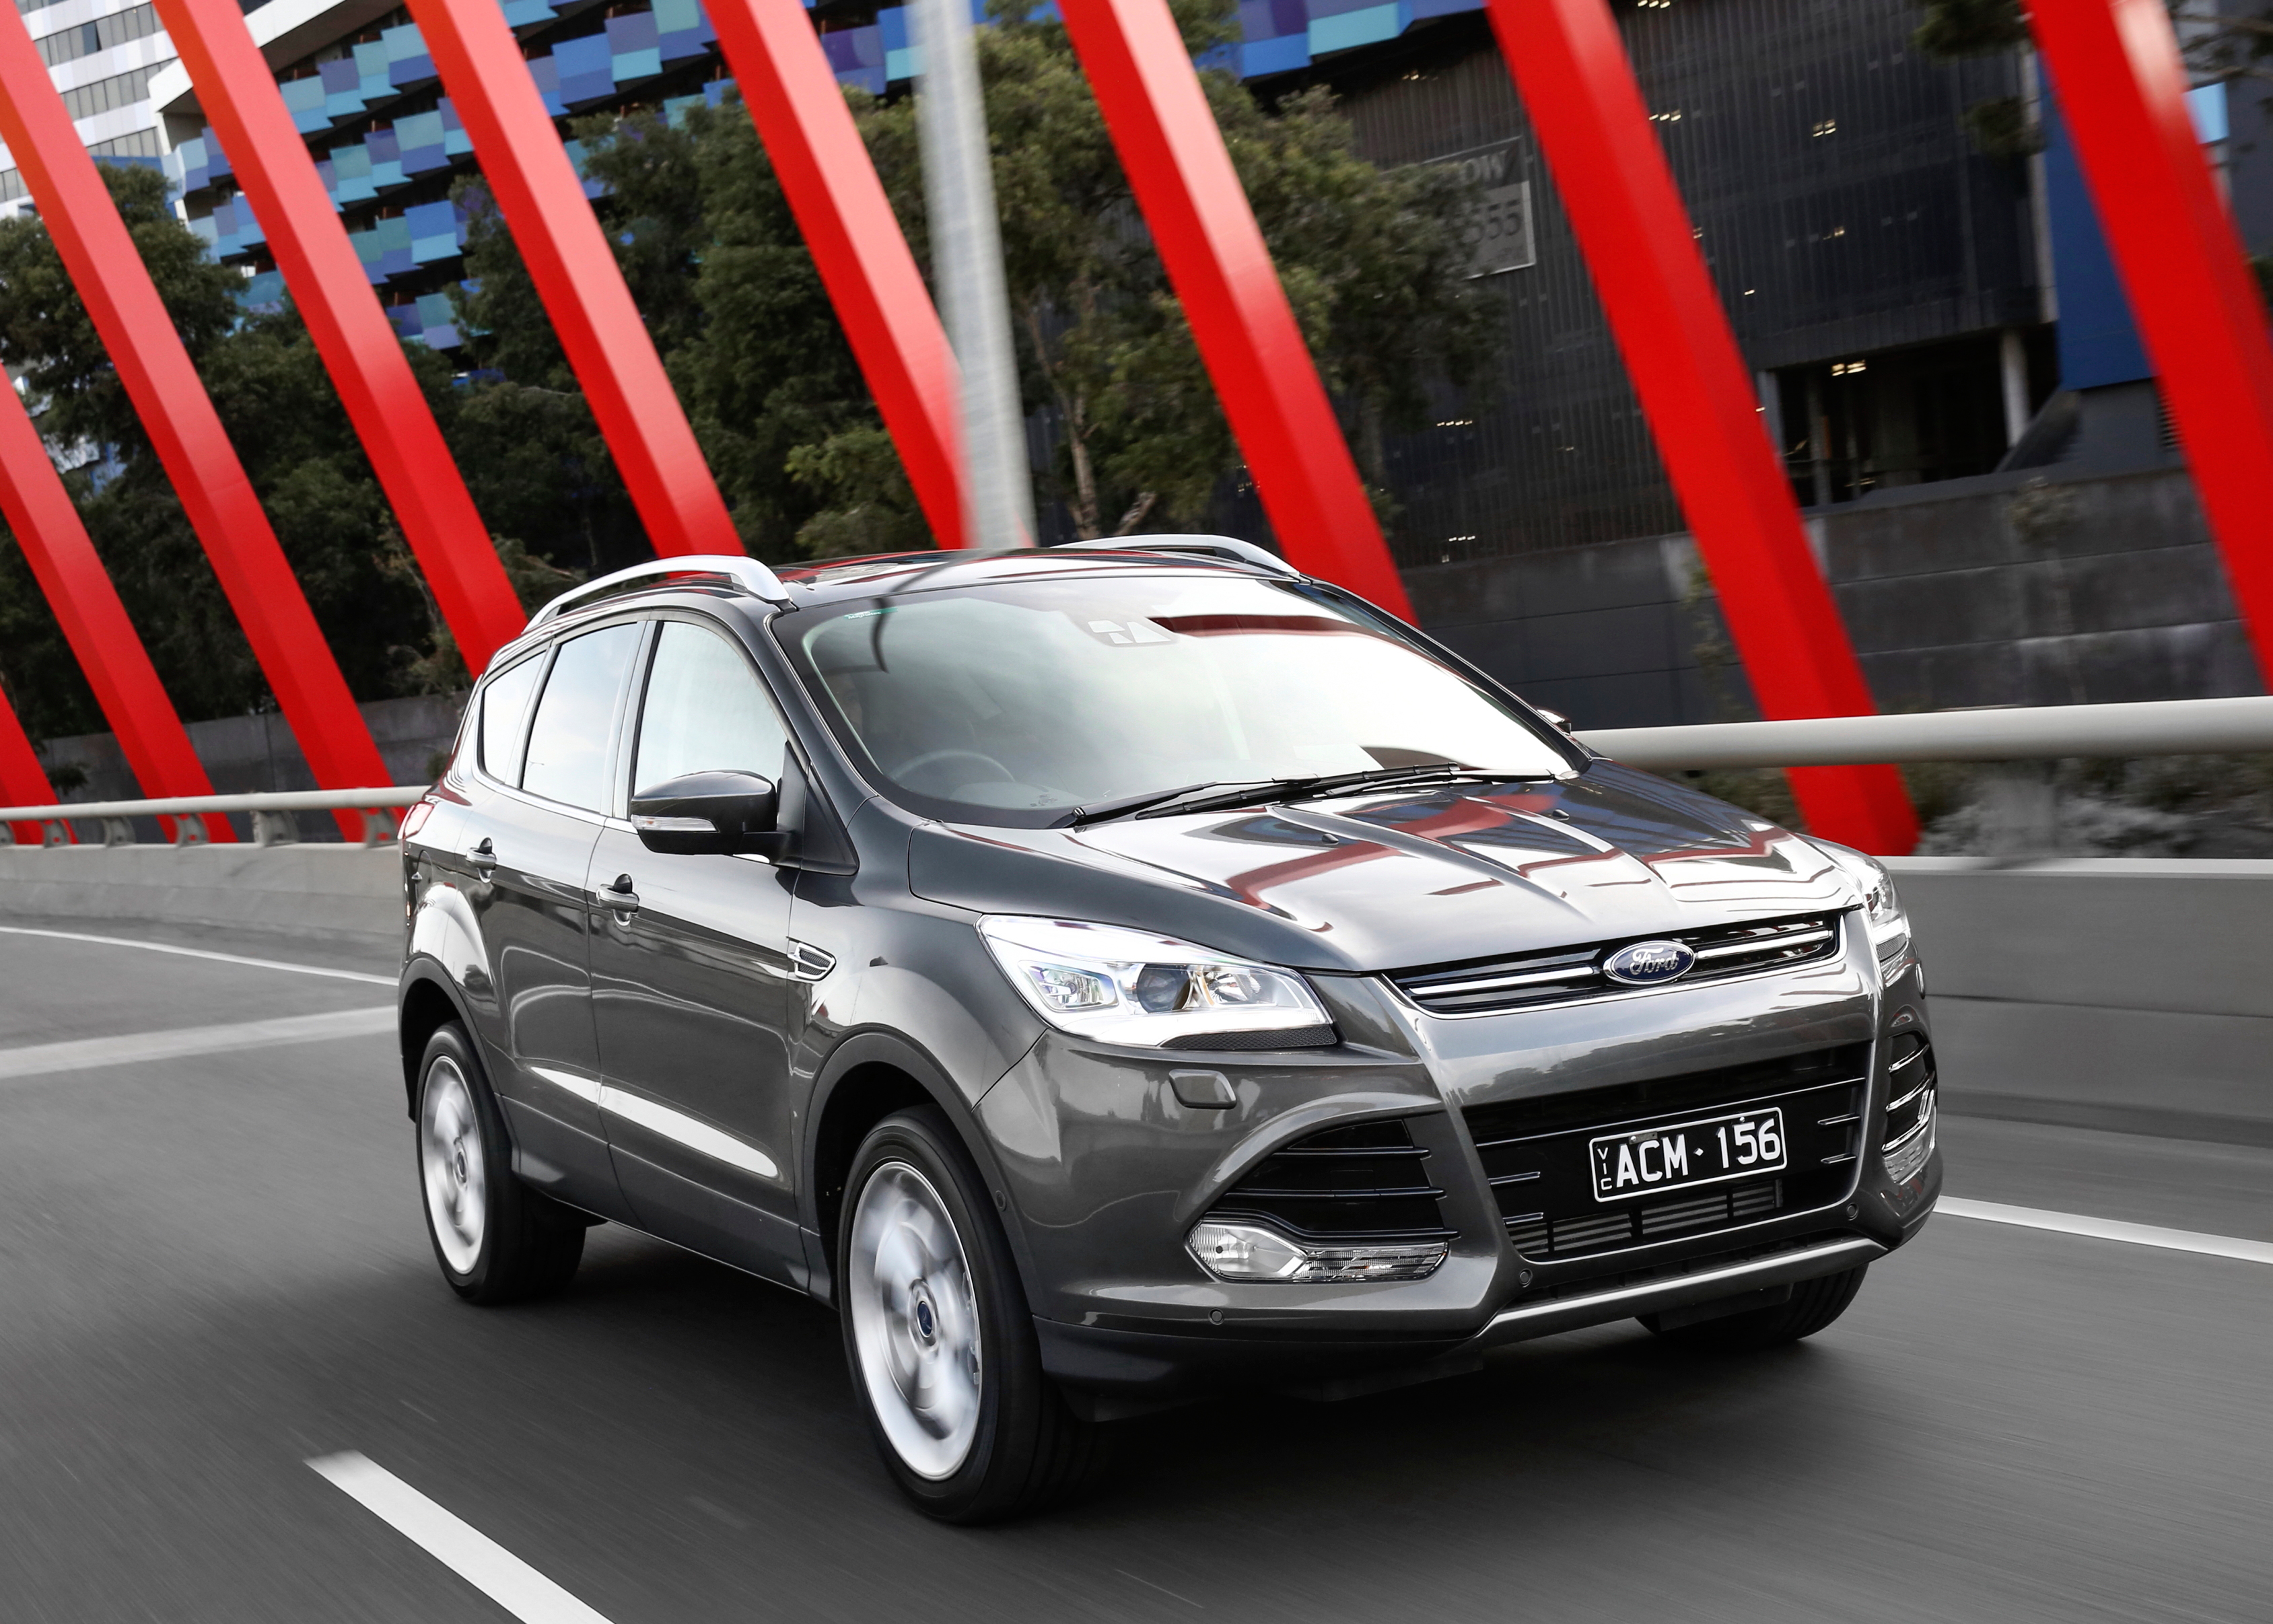 What mid-size SUV should I buy?